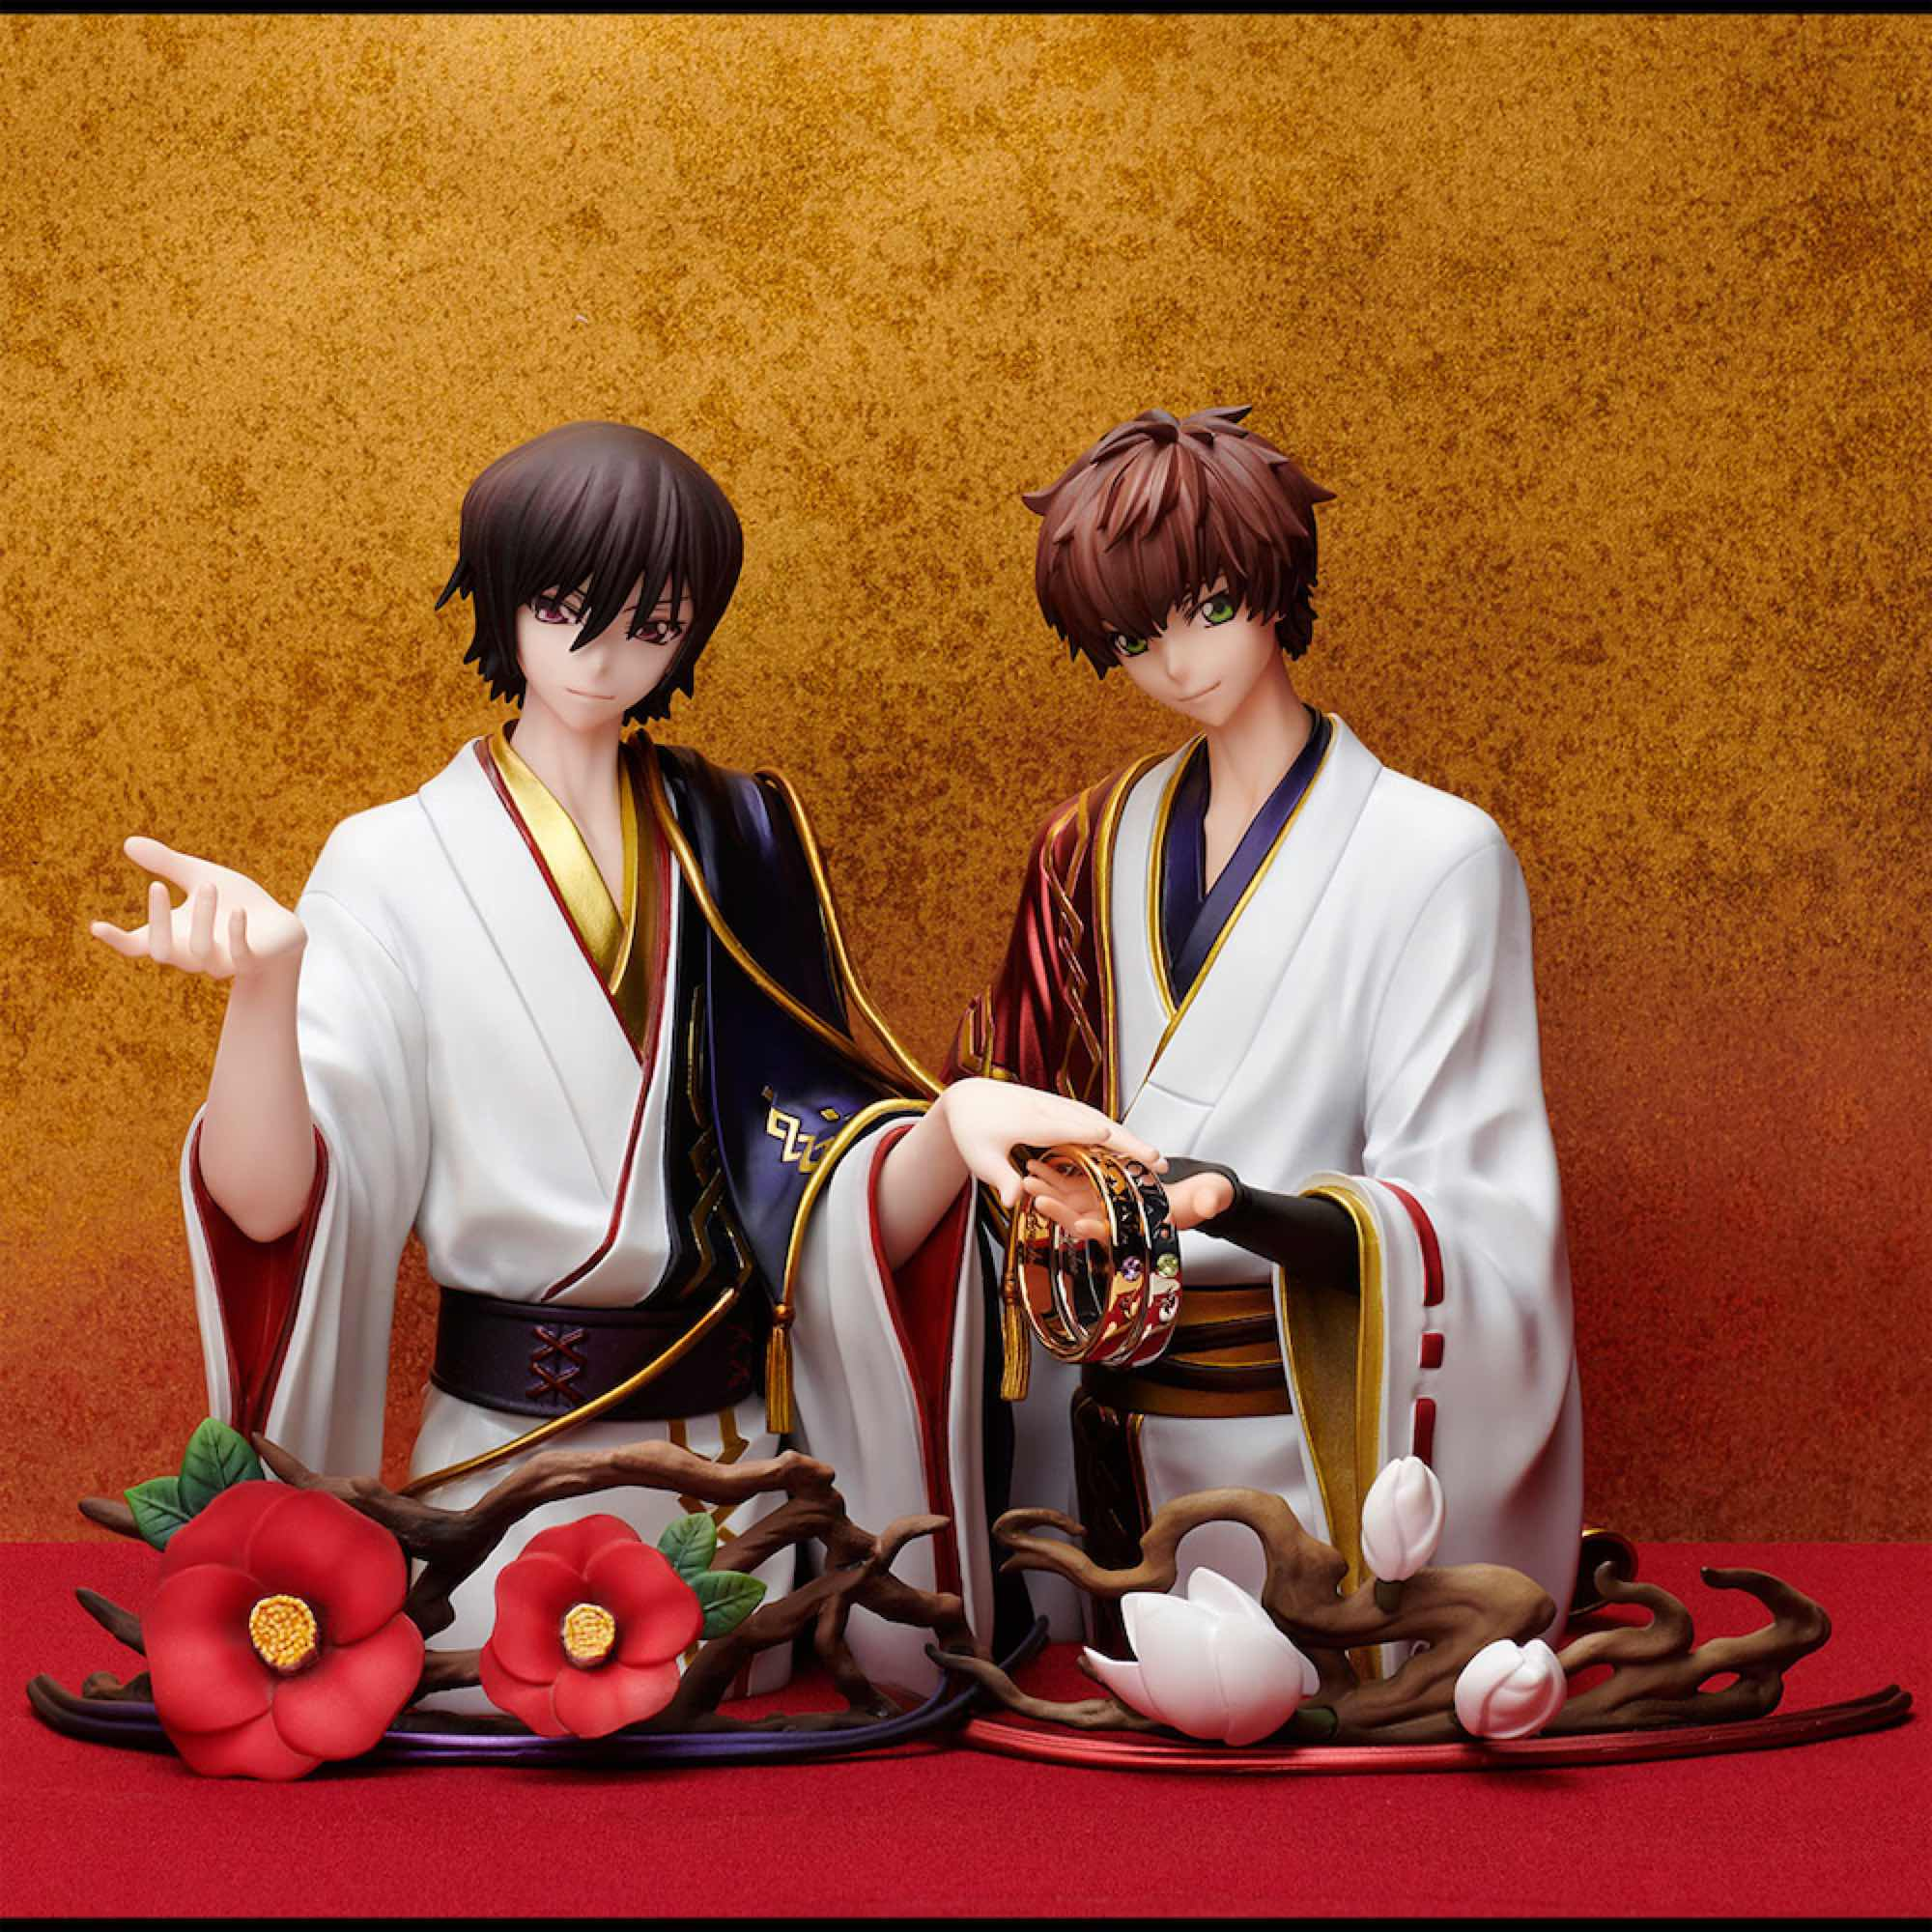 LELOUCH & SUZAKU FIGURA Y ANILLOS T-13 RING STYLE CODE GEASS LELOUCH FREEING